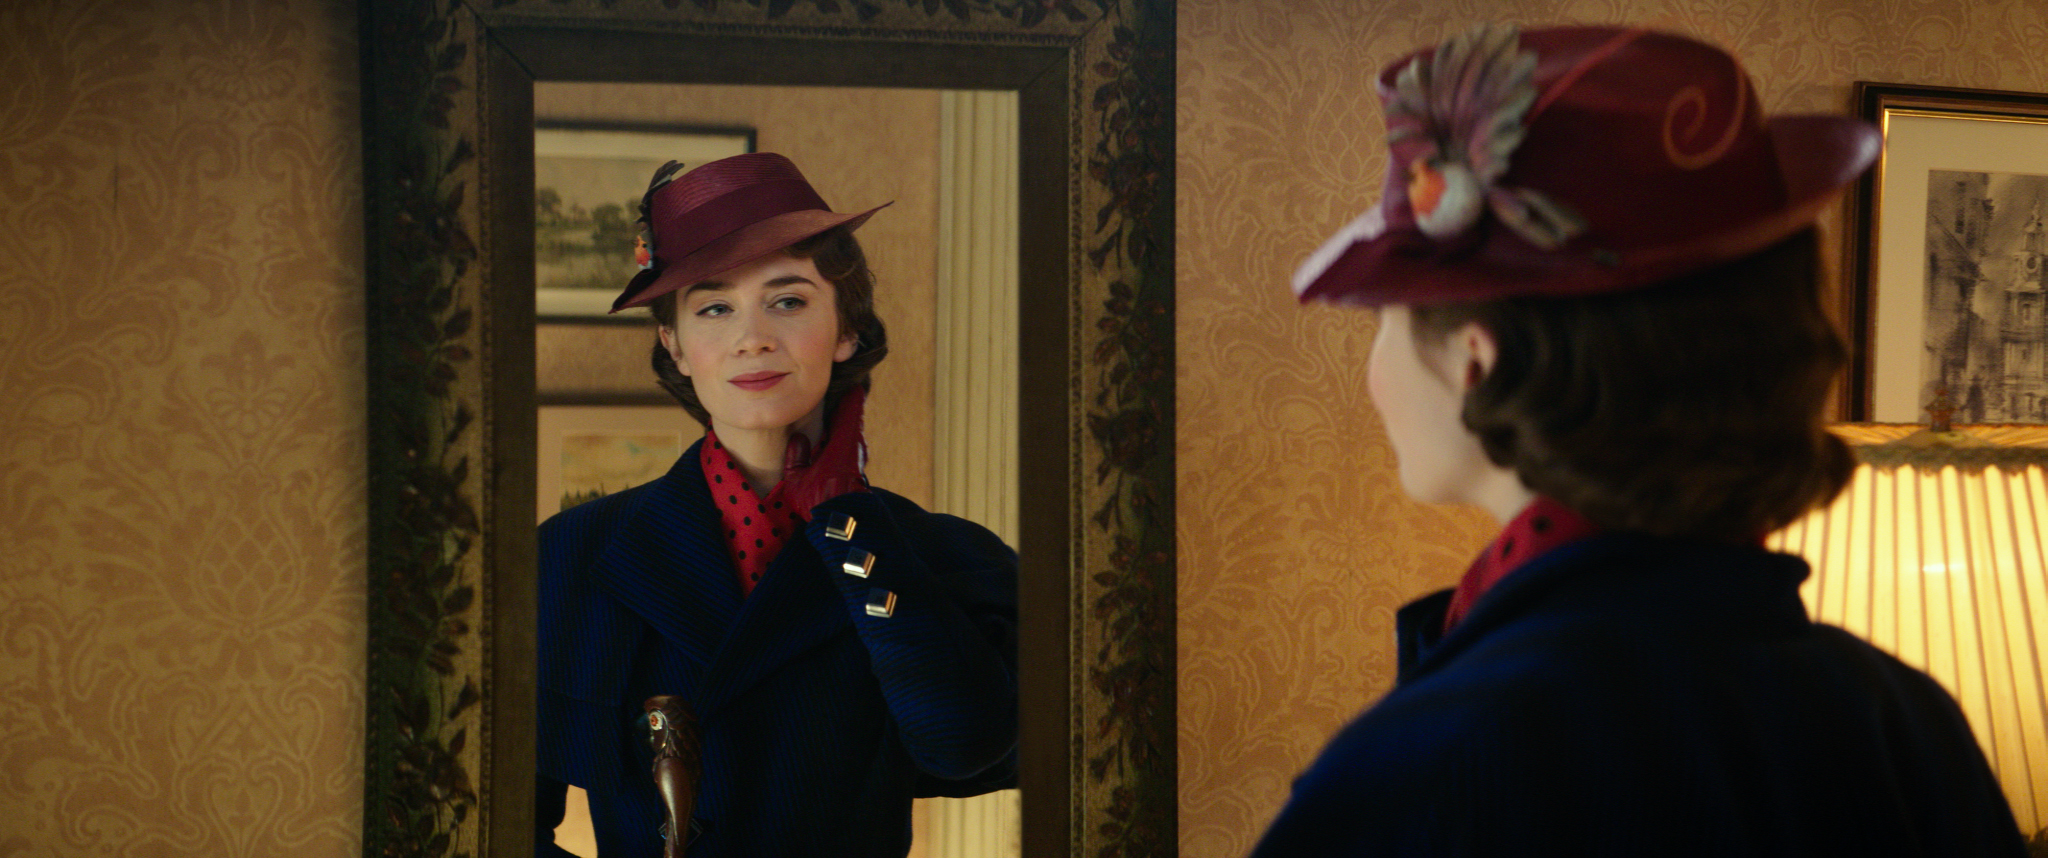 Mary Poppins (Emily Blunt)